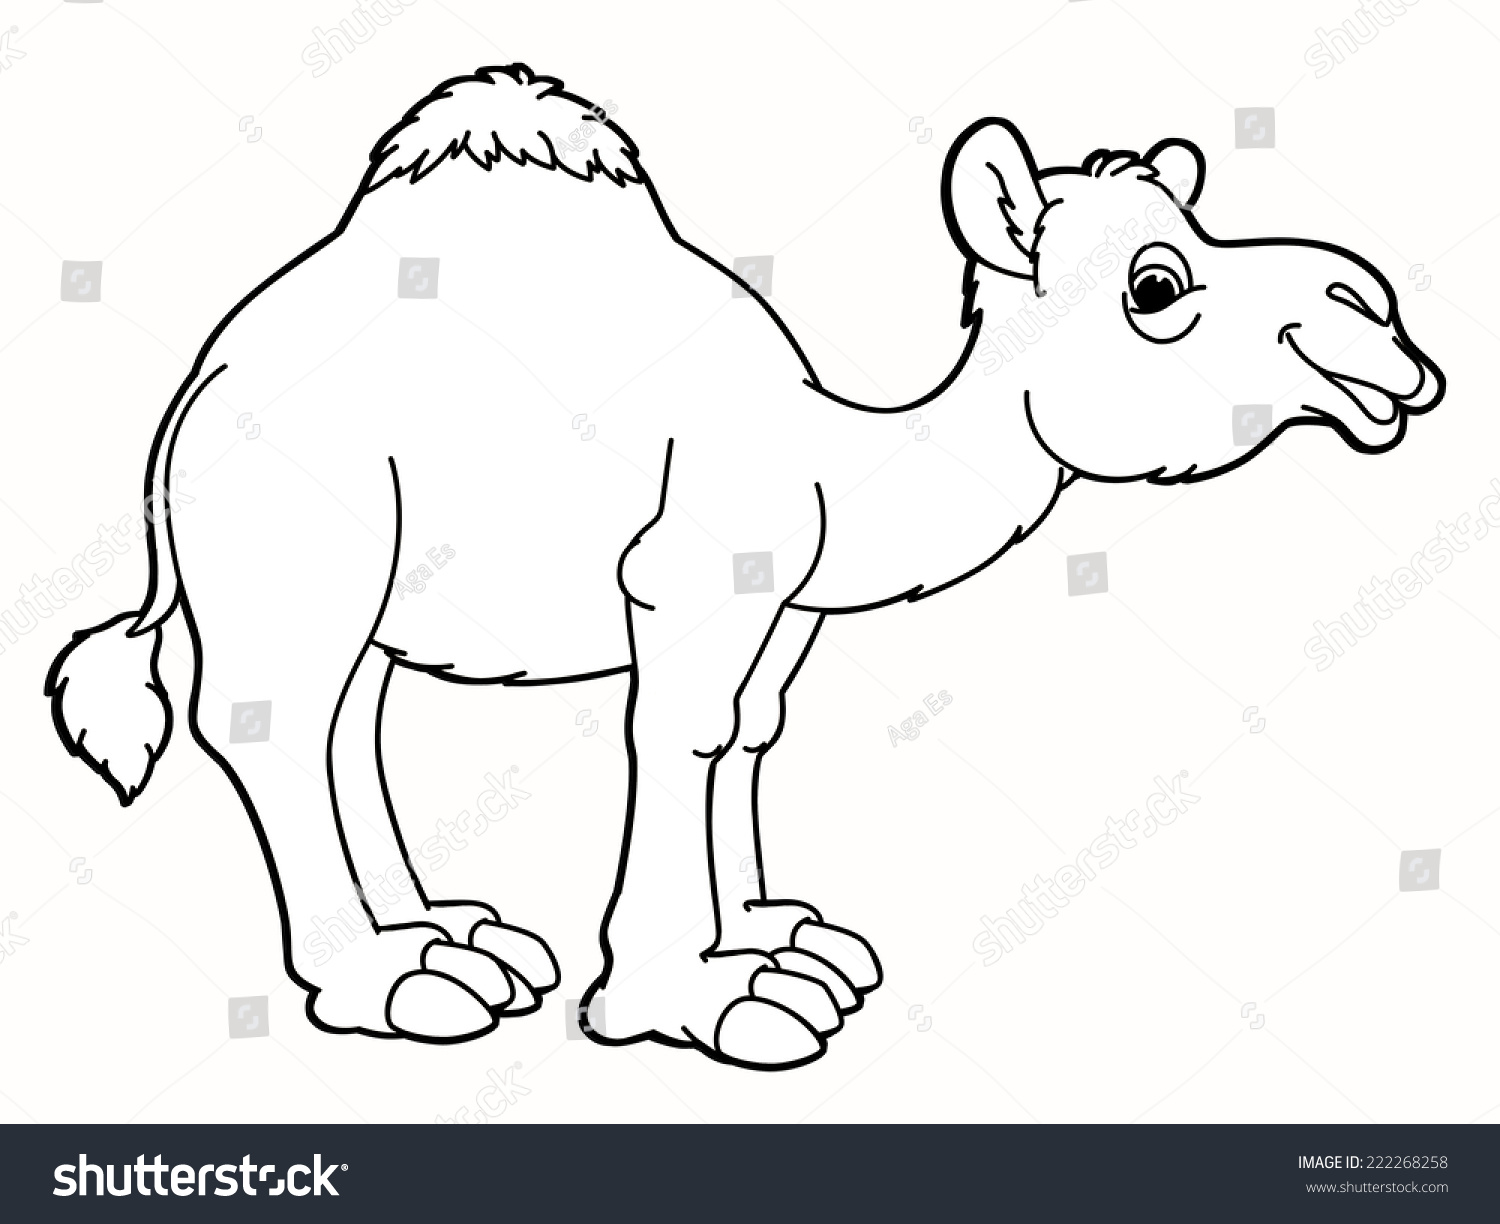 cartoon animal camel caricature coloring page stock illustration